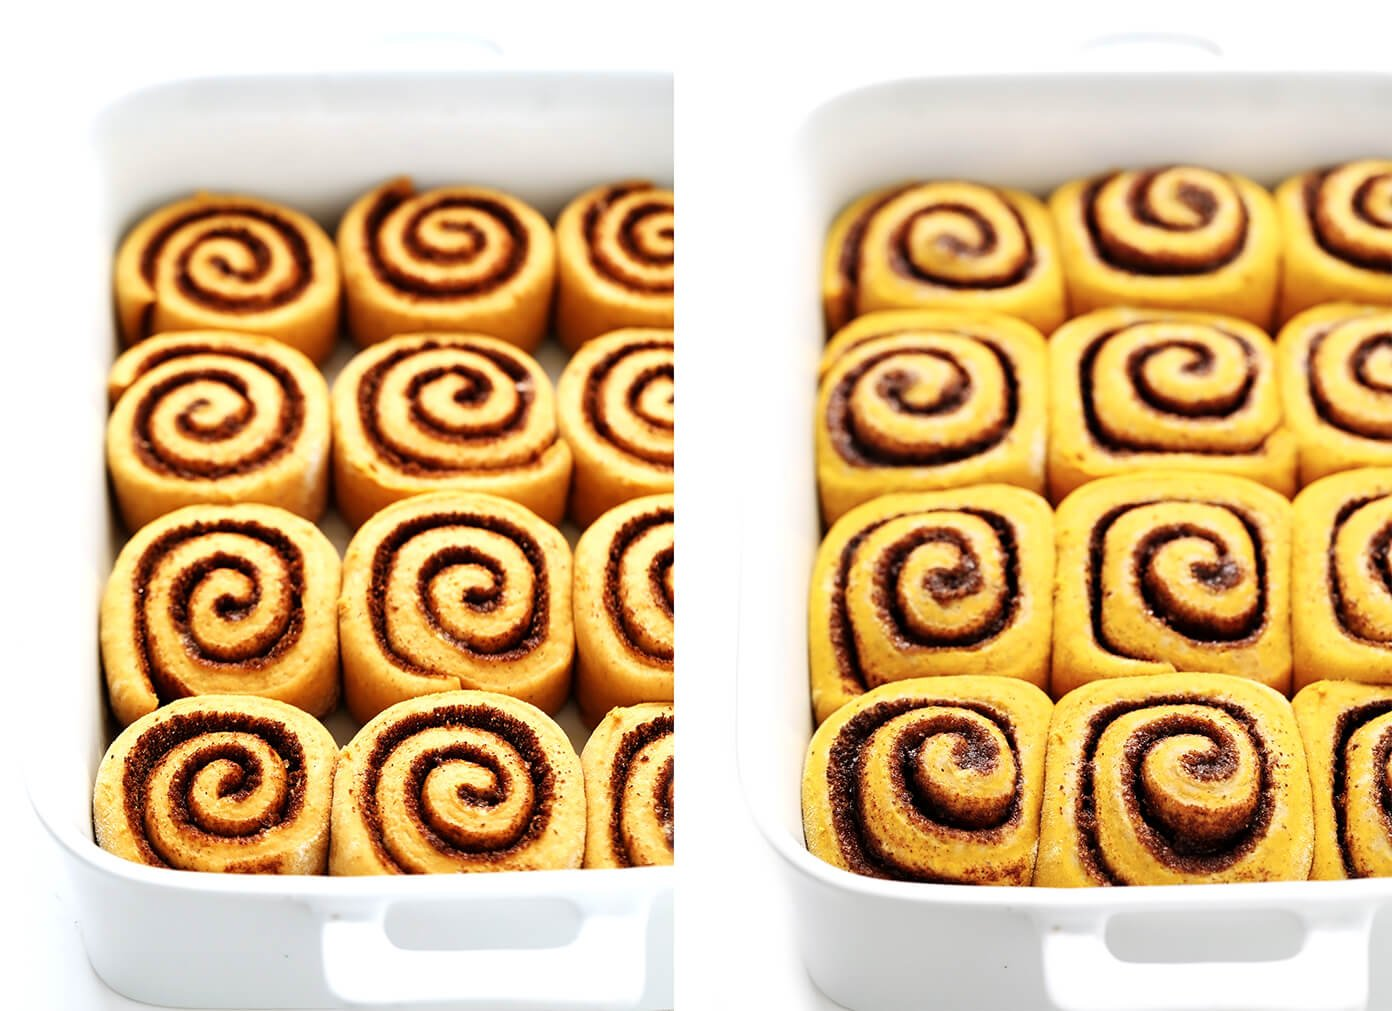 Pumpkin Cinnamon Roll Dough Before and After Baking